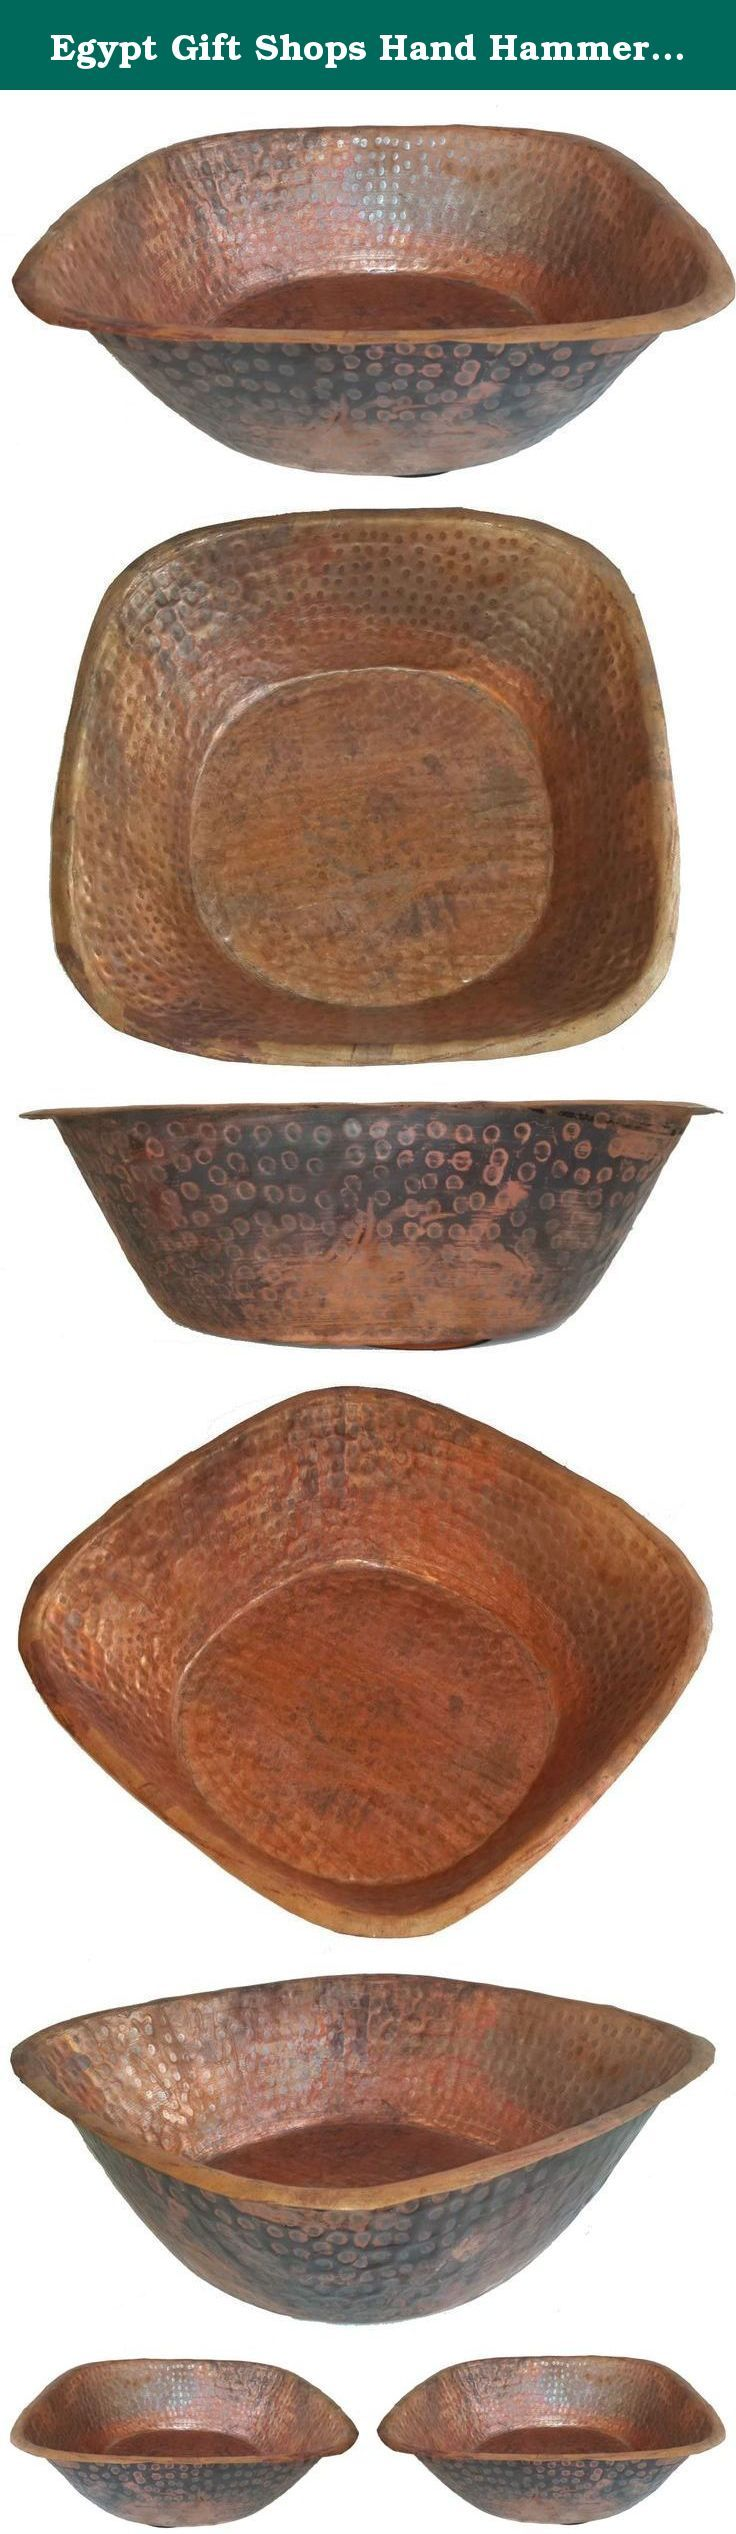 Egypt Gift Shops Hand Hammered Pair Square Copper Pedicure Foot Massage Wash Therapy Soak Bowls. Hand hammered by Egyptian artisans from pure copper. Easy handling by holding at edges. Anti bacteria, microbes or viruses. Easy maintenance. Due to the Artisan Crafted nature of our copper bowls, dimensions may slightly vary.